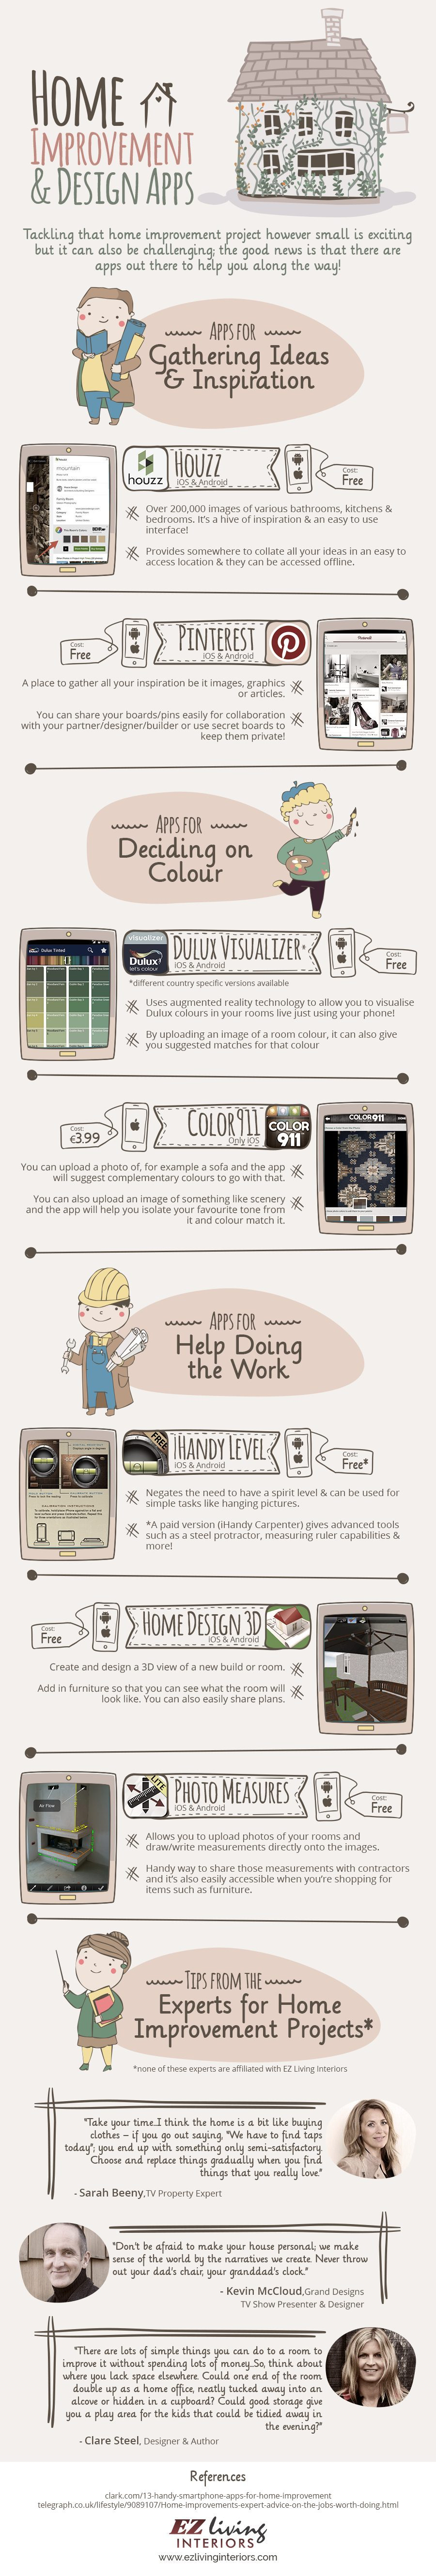 Home Improvement Apps - Infographic - Do It Yourself Apps